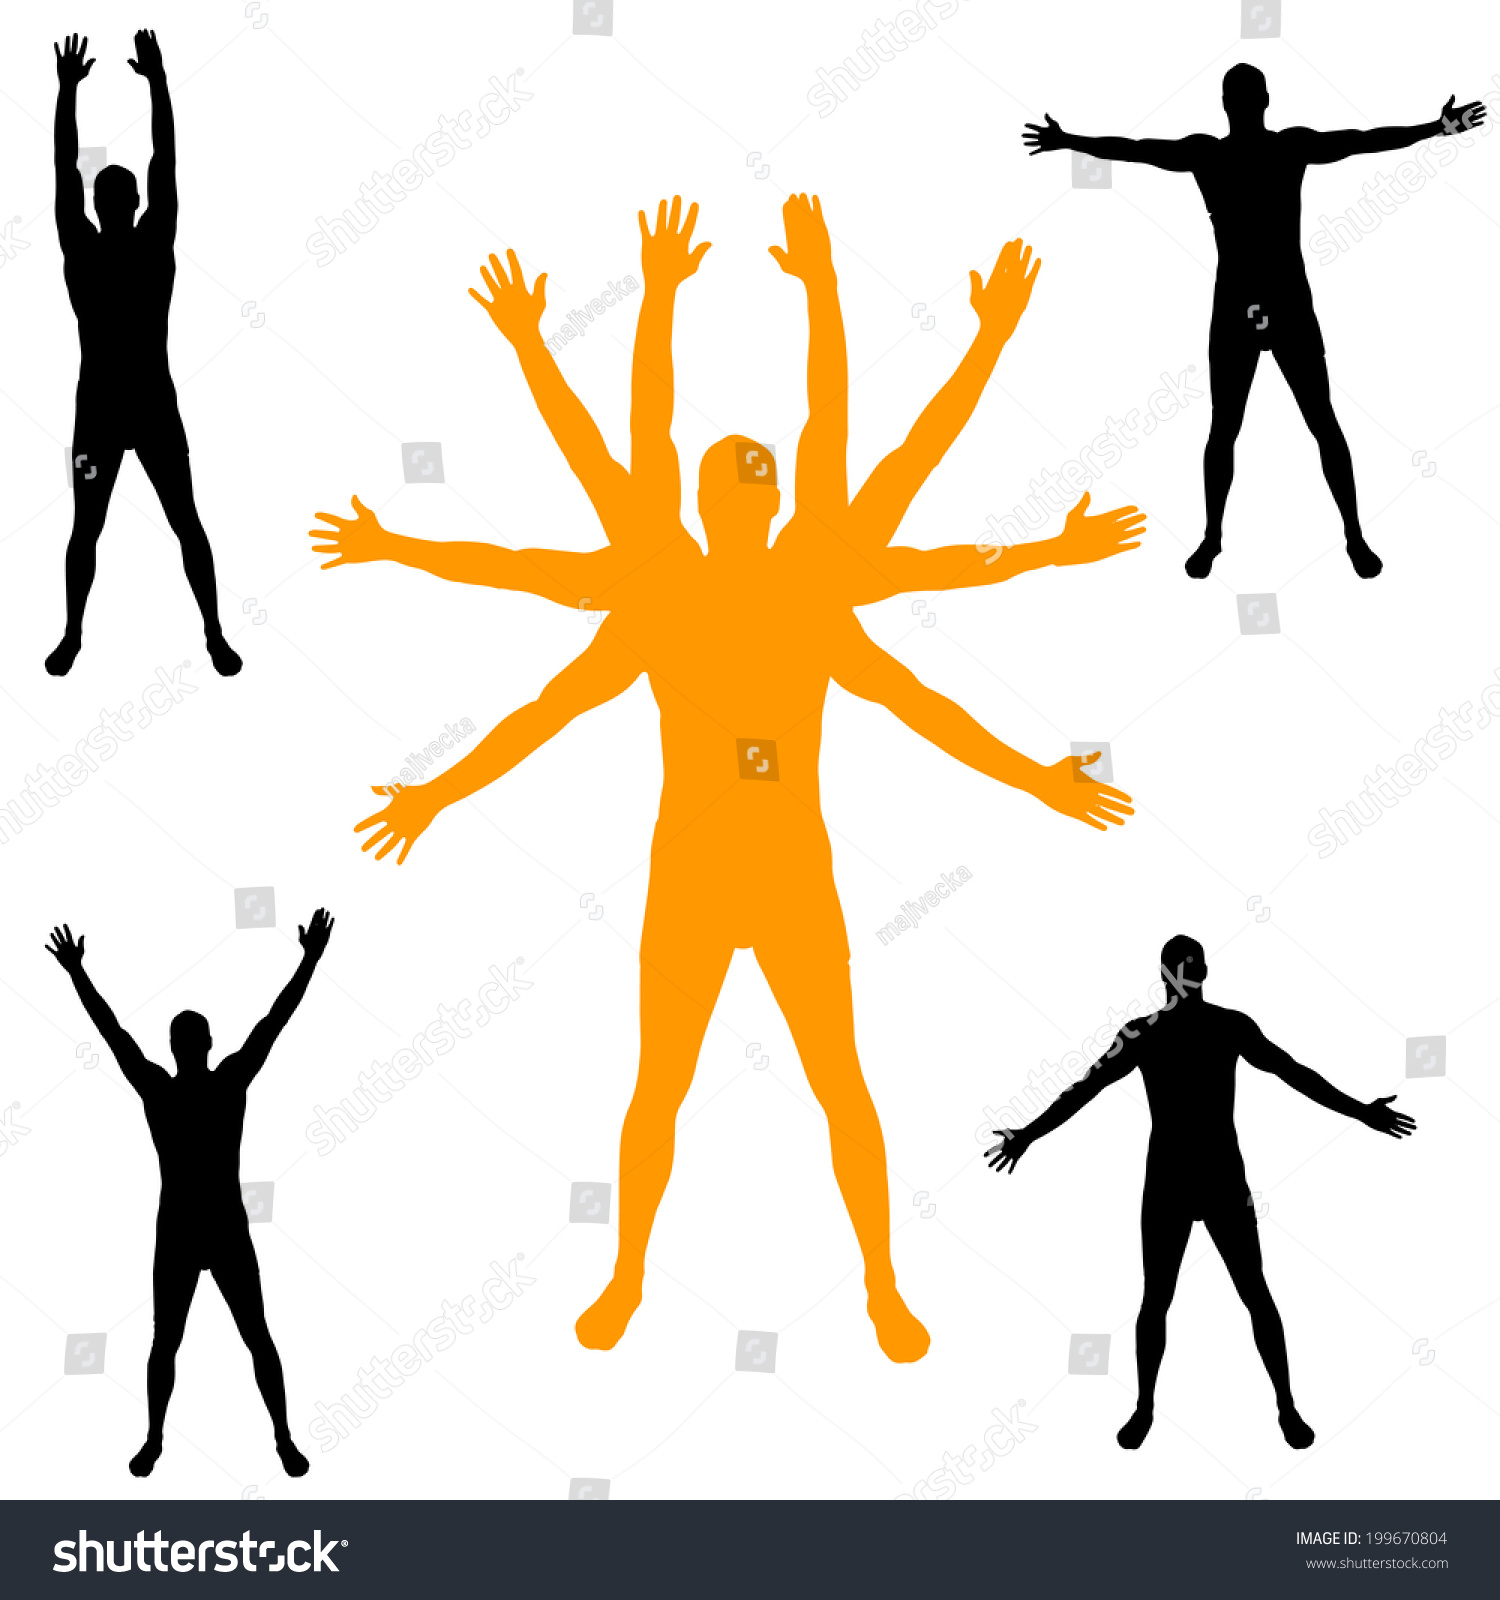 vector silhouette man arms outstretched stock vector (royalty free)  199670804  shutterstock